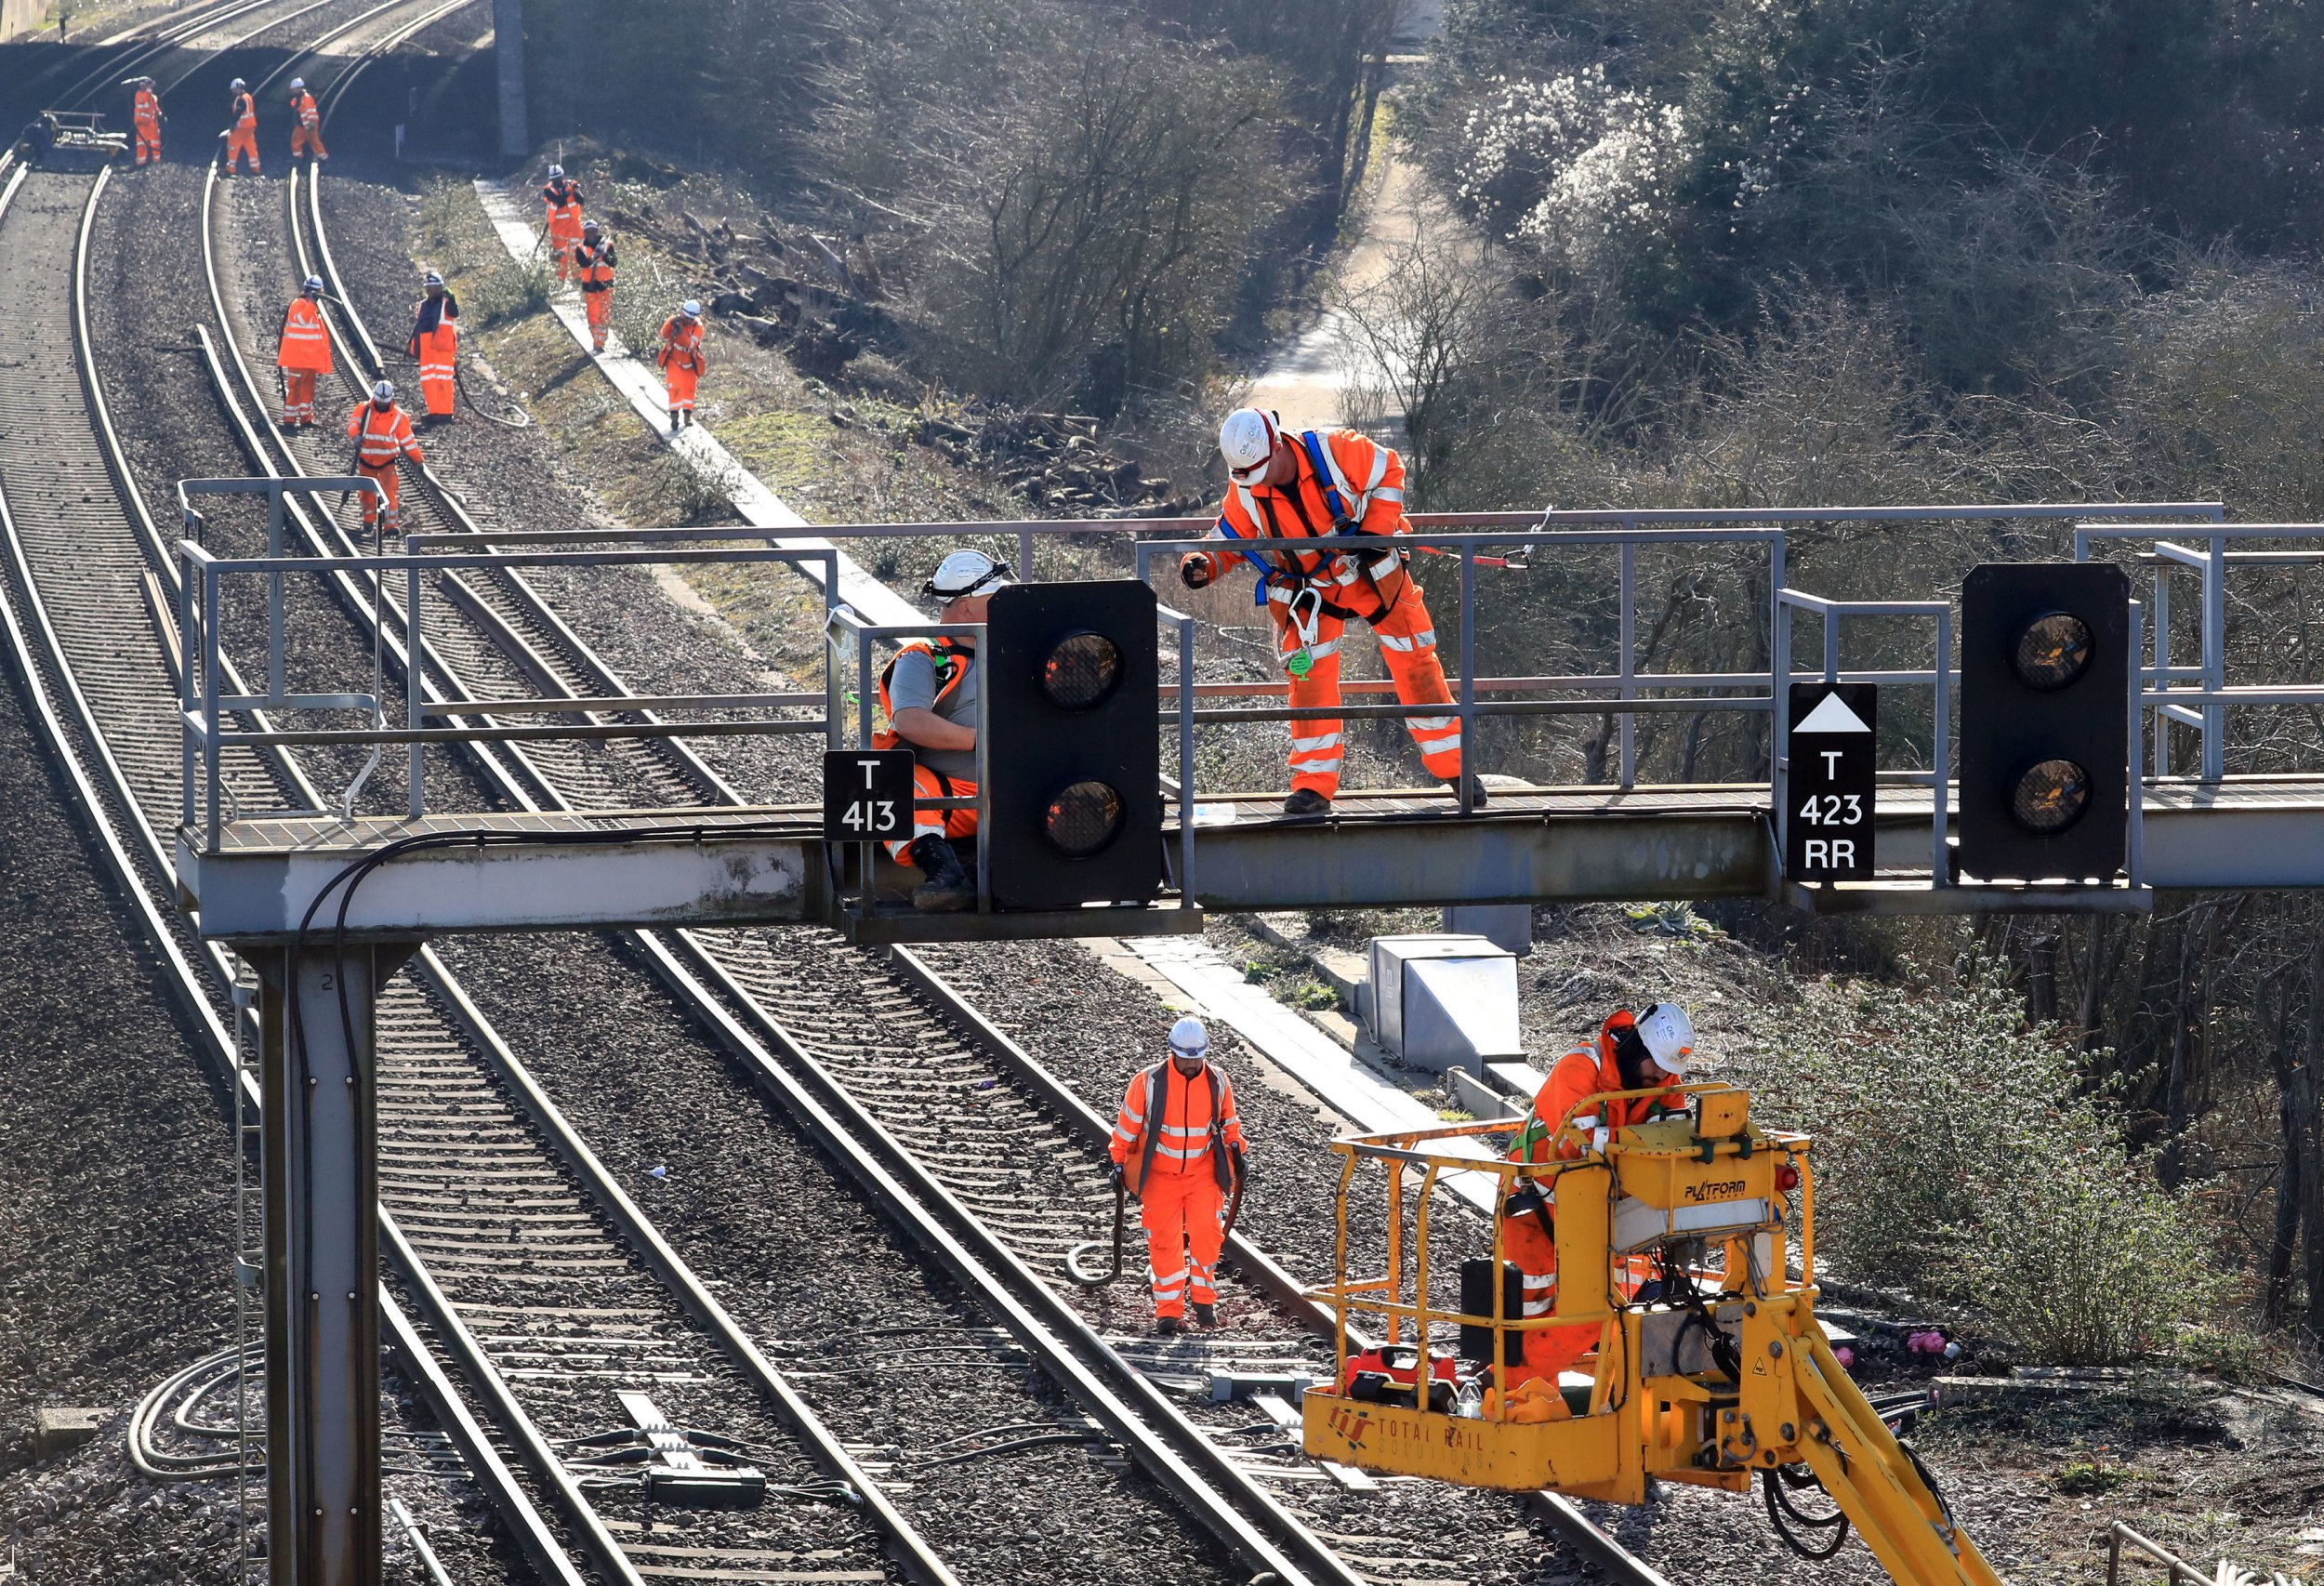 Engineers working on the the southern end of the Brighton Main Line (BML) near Brighton, Sussex, as one of Britain's busiest railway lines remains closed, causing major disruption to passengers. PRESS ASSOCIATION Photo. Picture date: Sunday February 17, 2019. No trains will operate on the line until February 25 to enable Network Rail to carry out engineering work as part of a ?67 million project. See PA story RAIL Brighton. Photo credit should read: Gareth Fuller/PA Wire